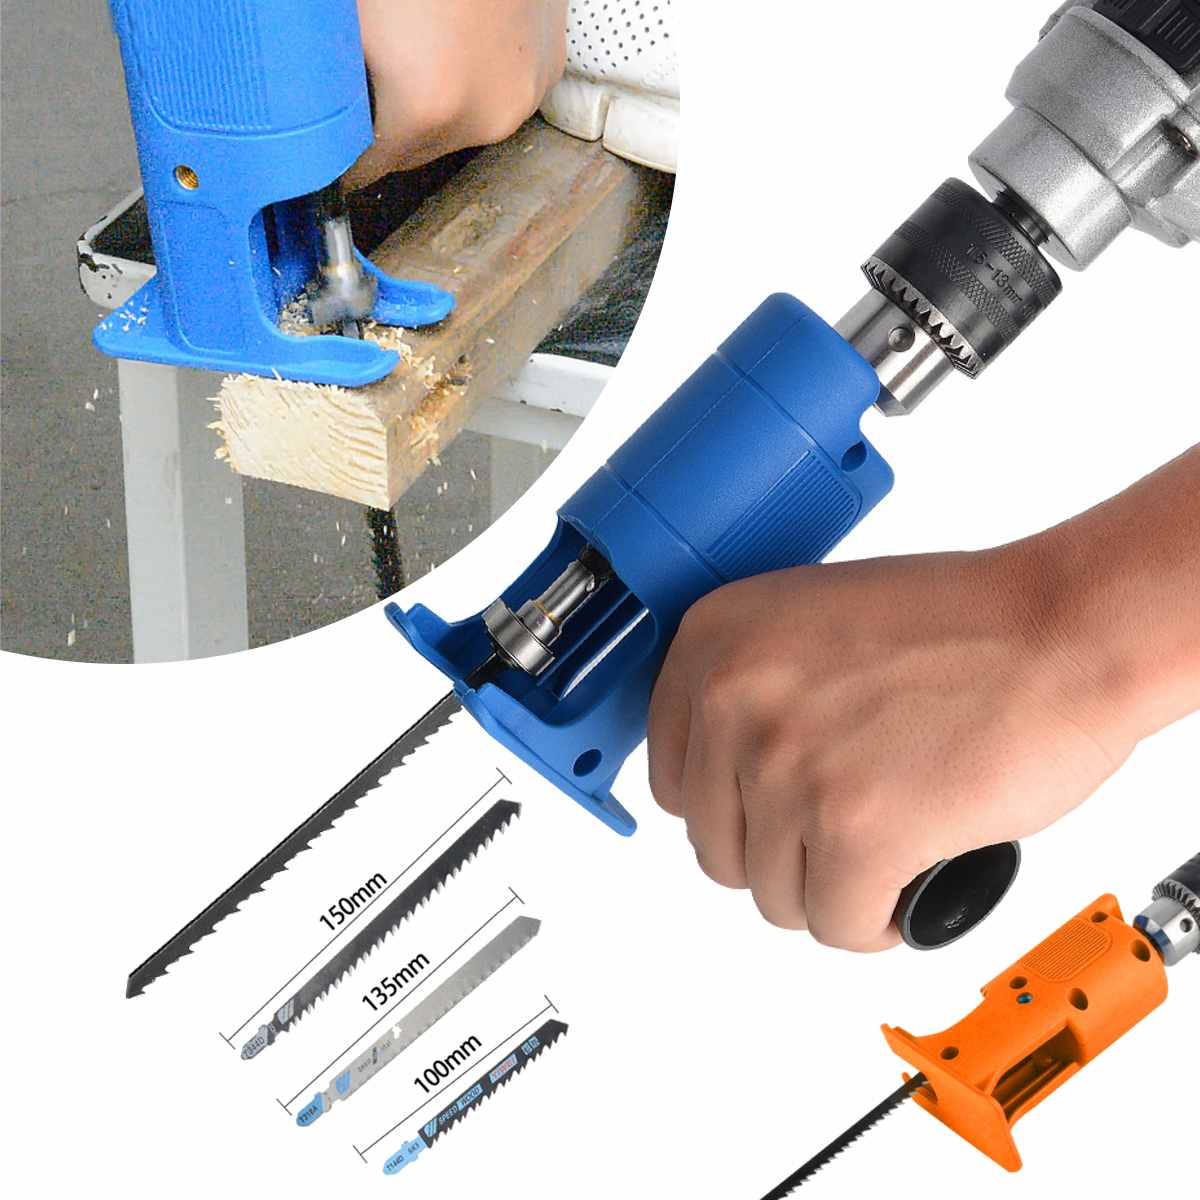 Reciprocating Saw Attachment Adapter Change Electric Drill Into Reciprocating Saw for Wood Metal Cutting